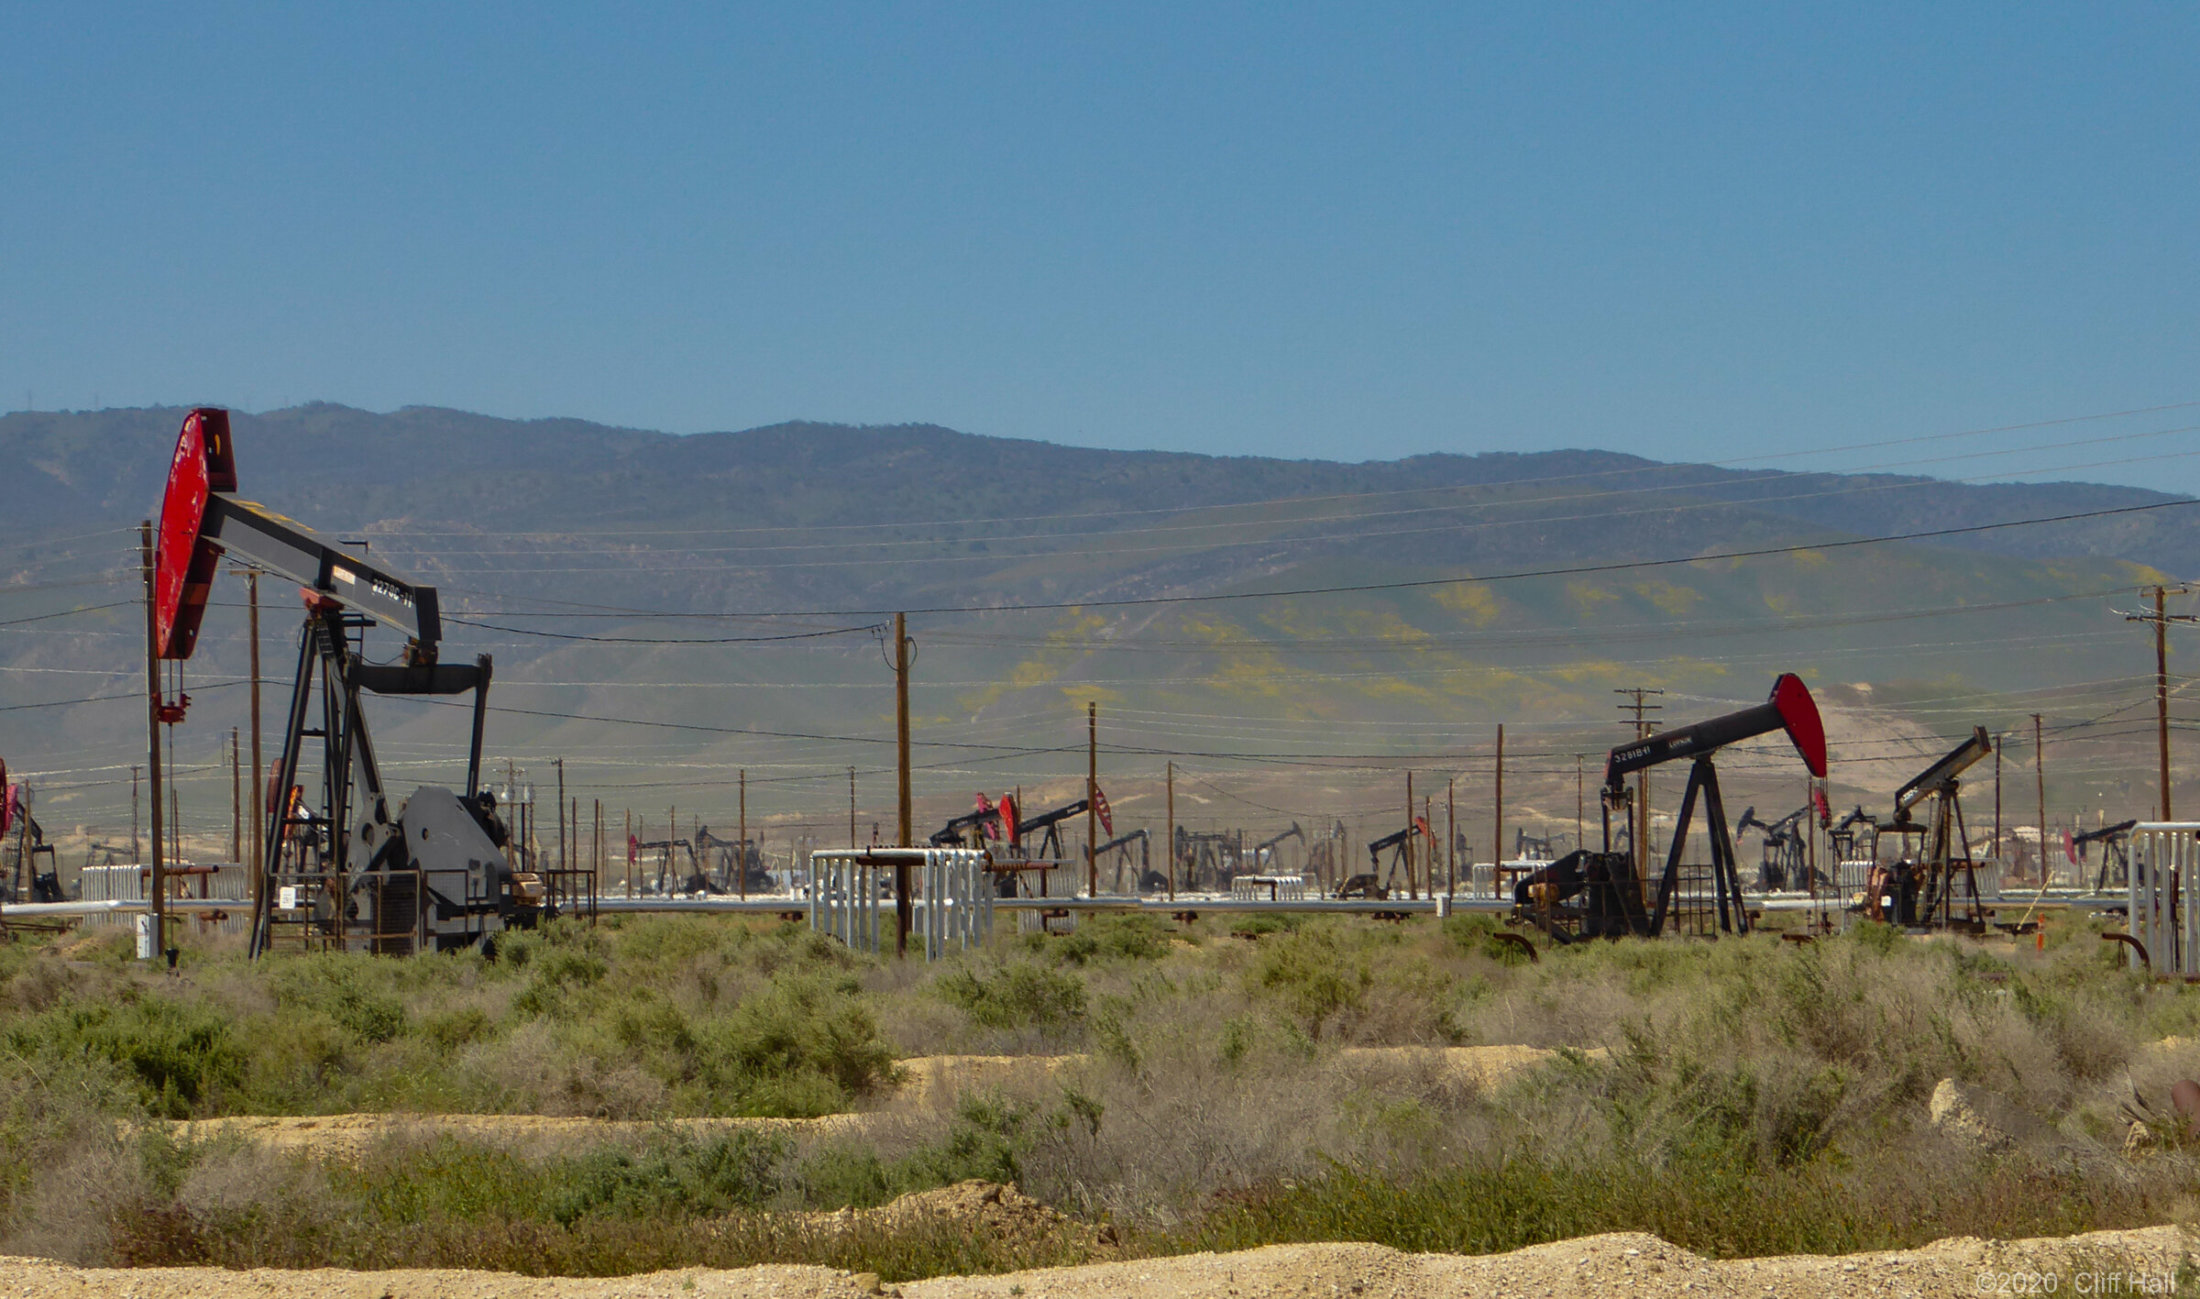 Midway-Sunset Oil Field. Can see wildflowers on the hills